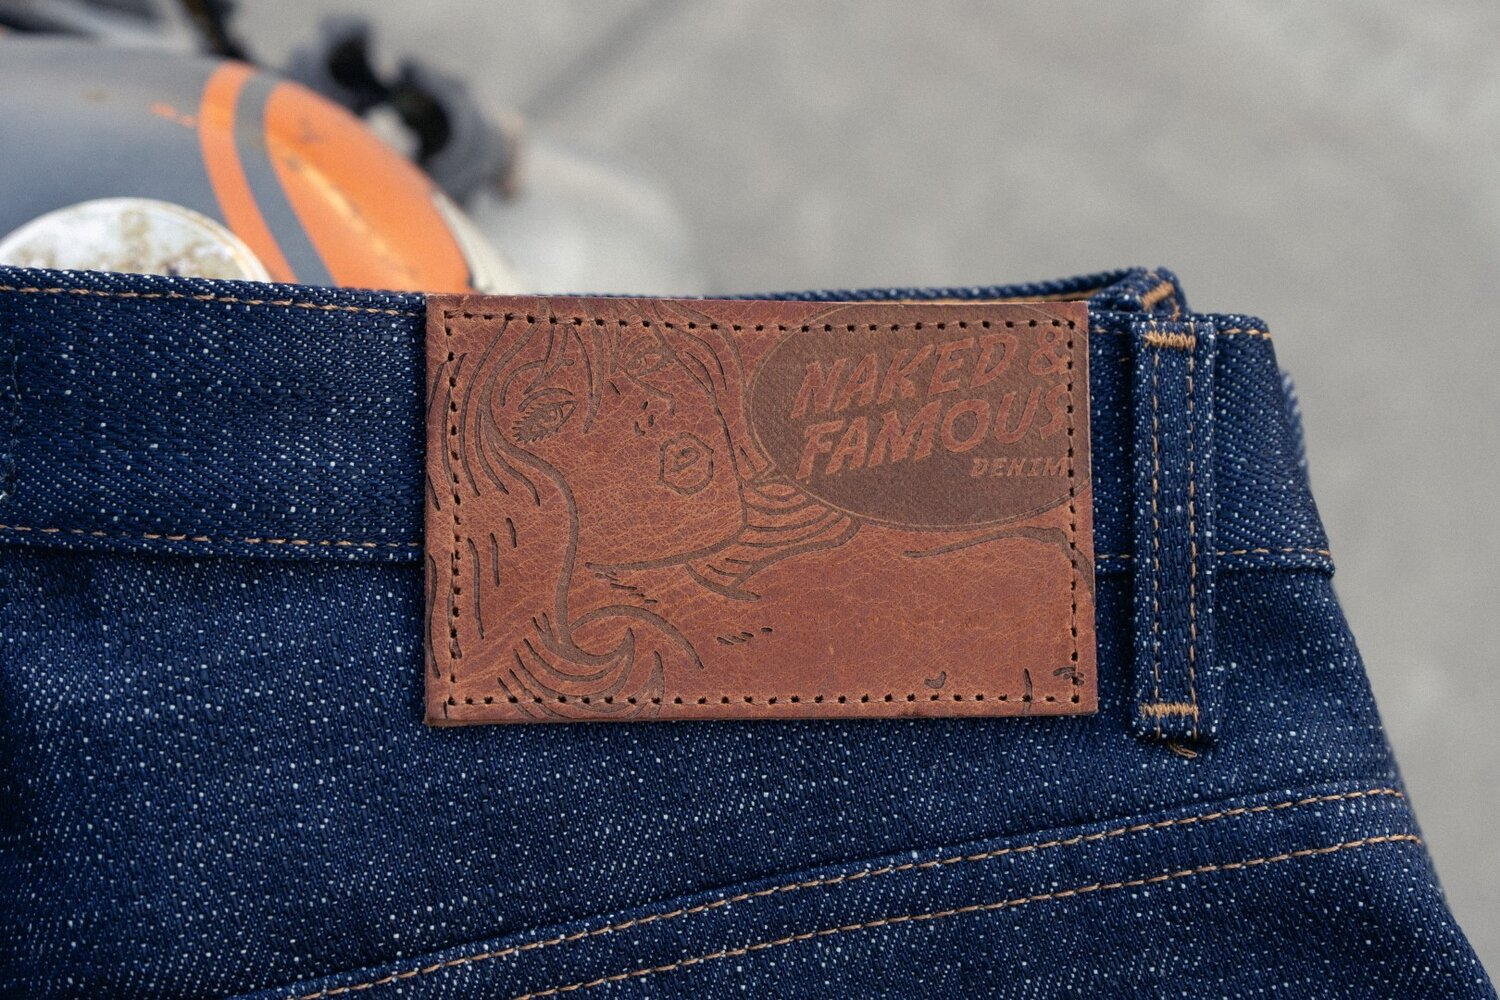 Elephant 9 - Leather Patch